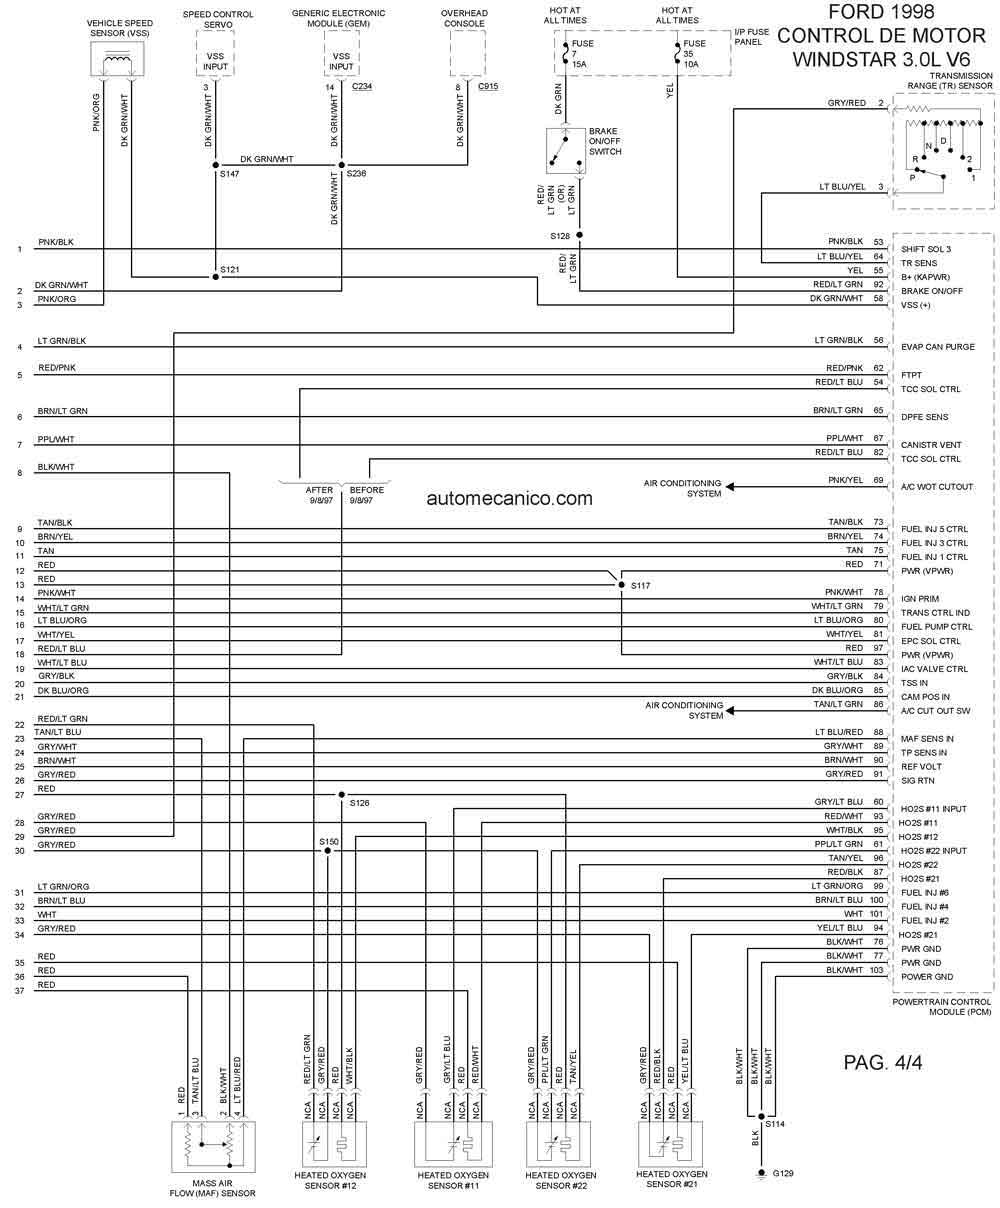 98 Lesabre Heater Wiring Diagram also 2001 Ford F 150 Iac Valve Location as well Egr Valve Location 97 Buick Riviera together with Engine Diagram For 2000 Chevrolet Pick Up moreover 2004 Mercury Mountaineer Engine Diagram. on wiring diagram for 1995 mercury villager